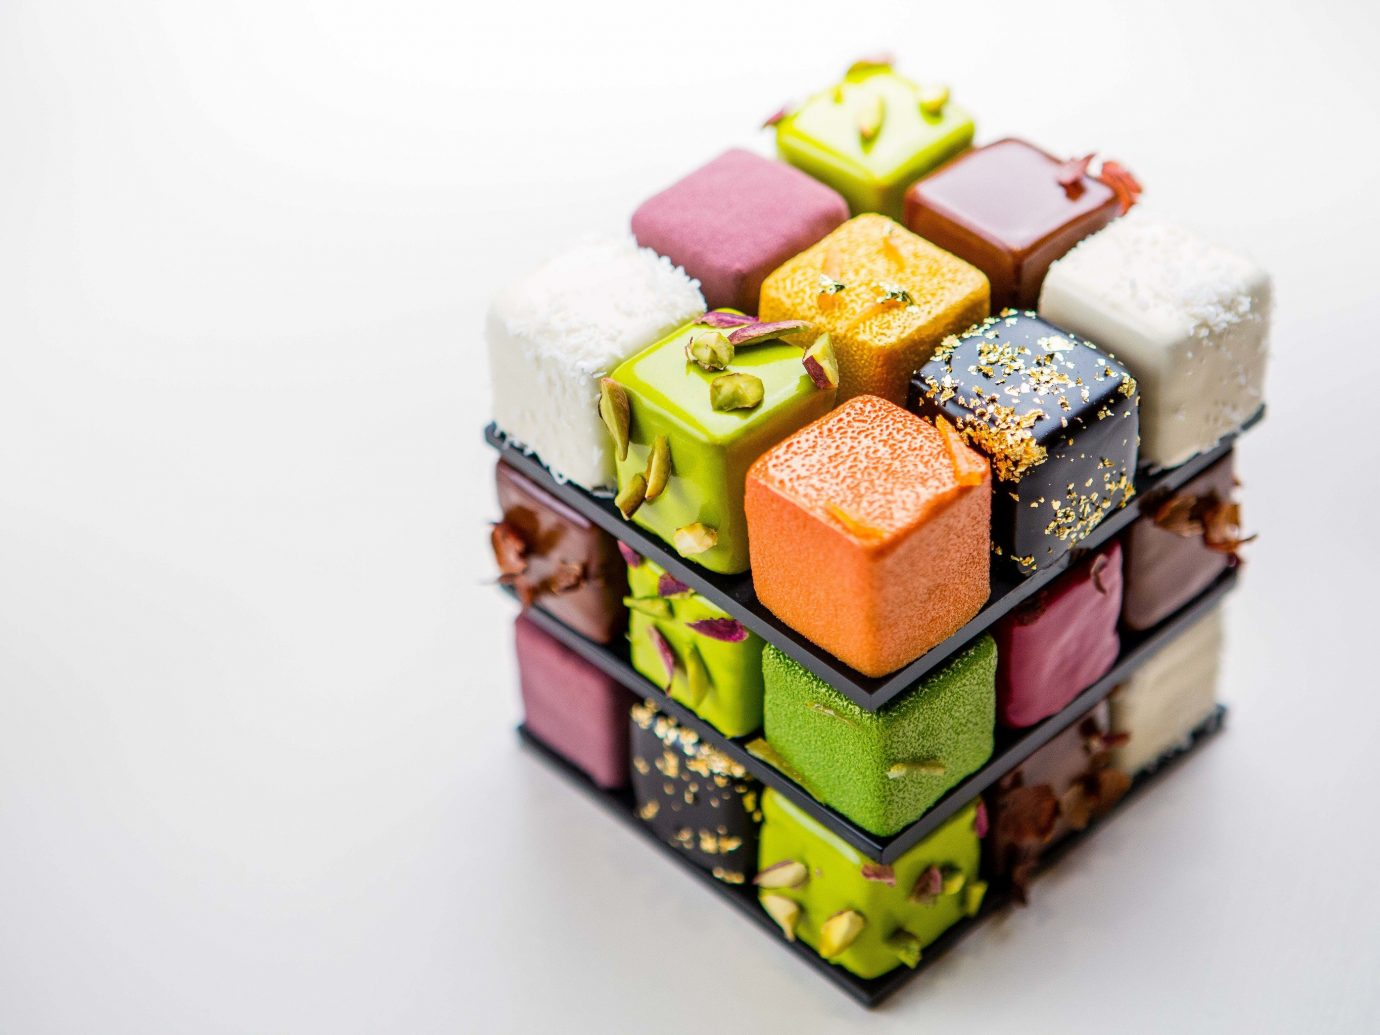 europe Trip Ideas cake indoor toy sweetness product petit four confectionery product design food decorated square colored